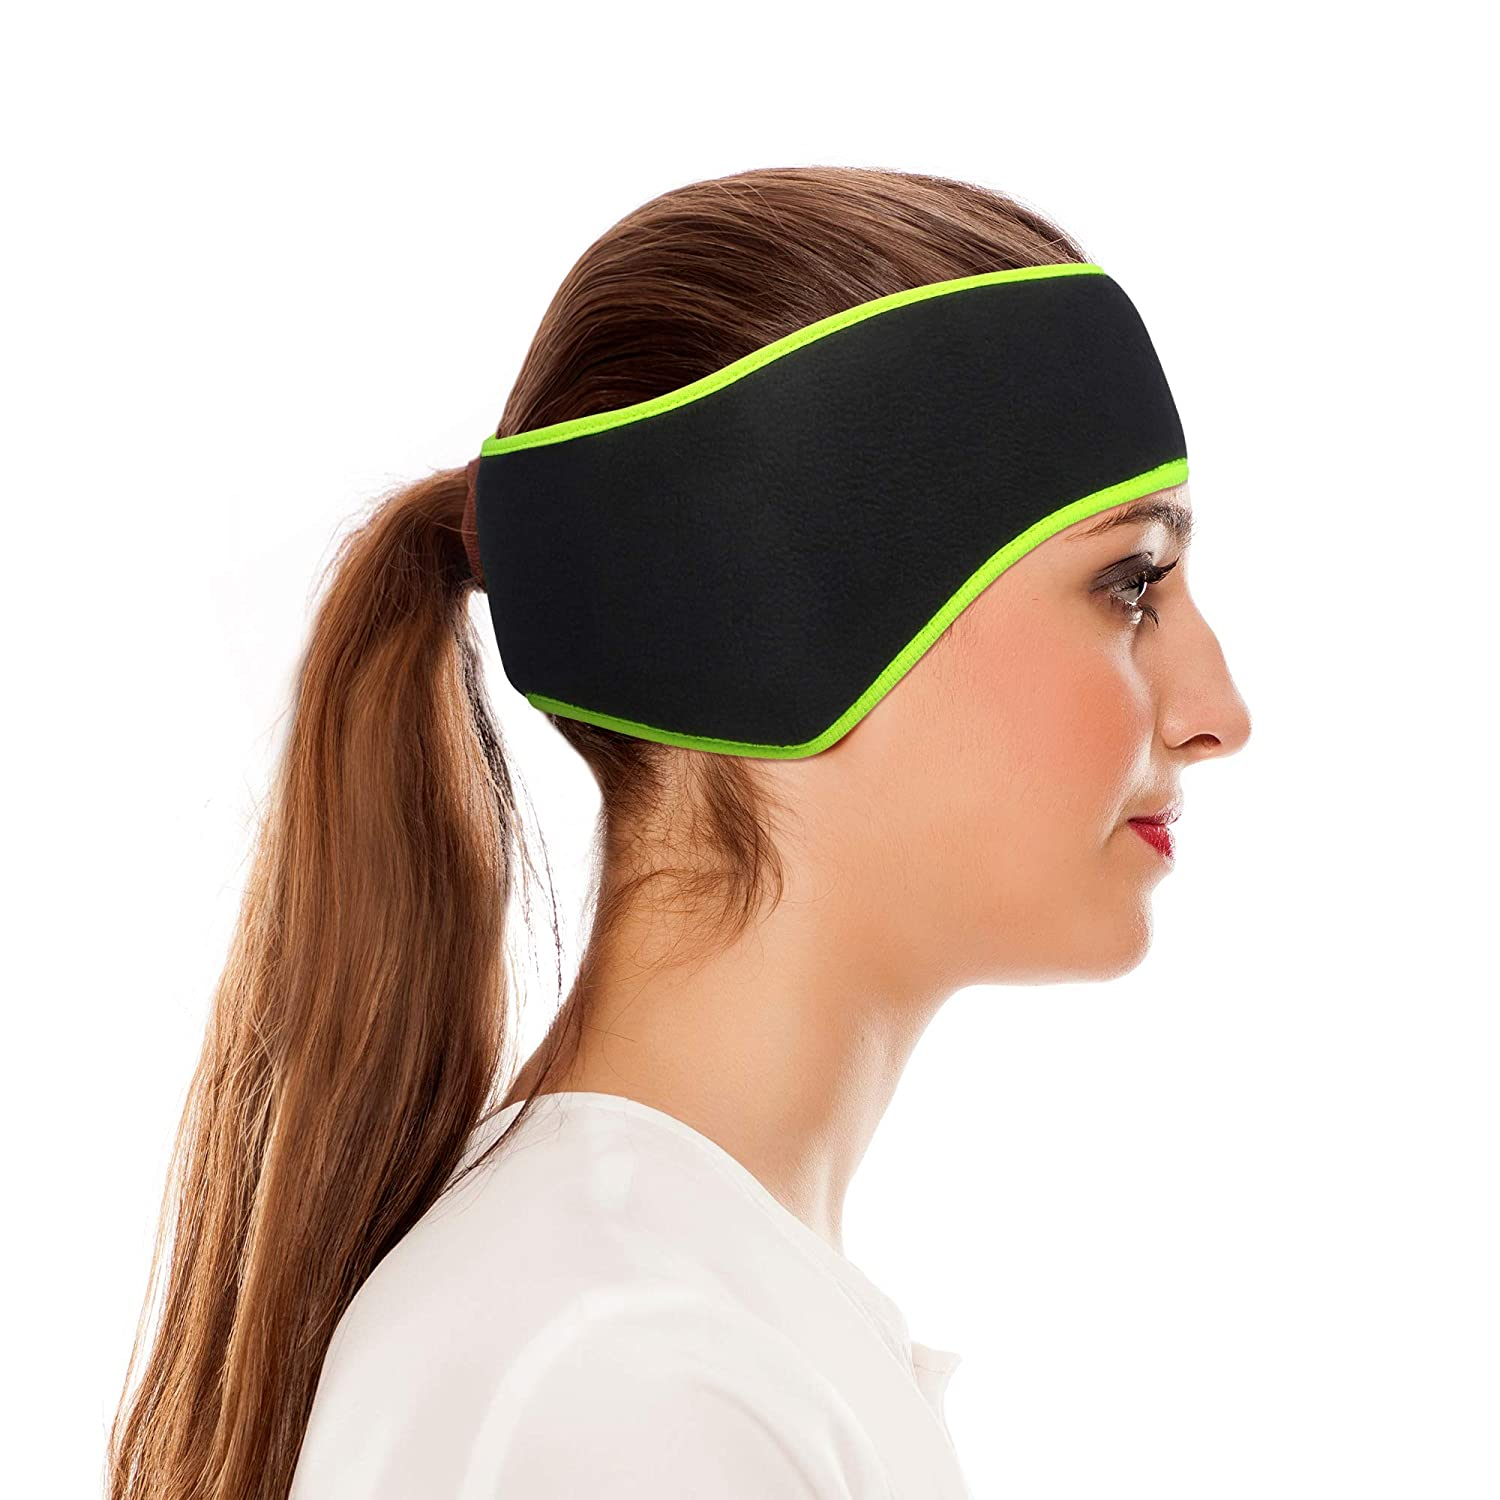 Omeneex Women Ear Warmers headband Double-Layer Fleece More Thicker Men/'s Headband//Women/'s Ponytail Earband Ear Warmer Black-Hi-vis Green